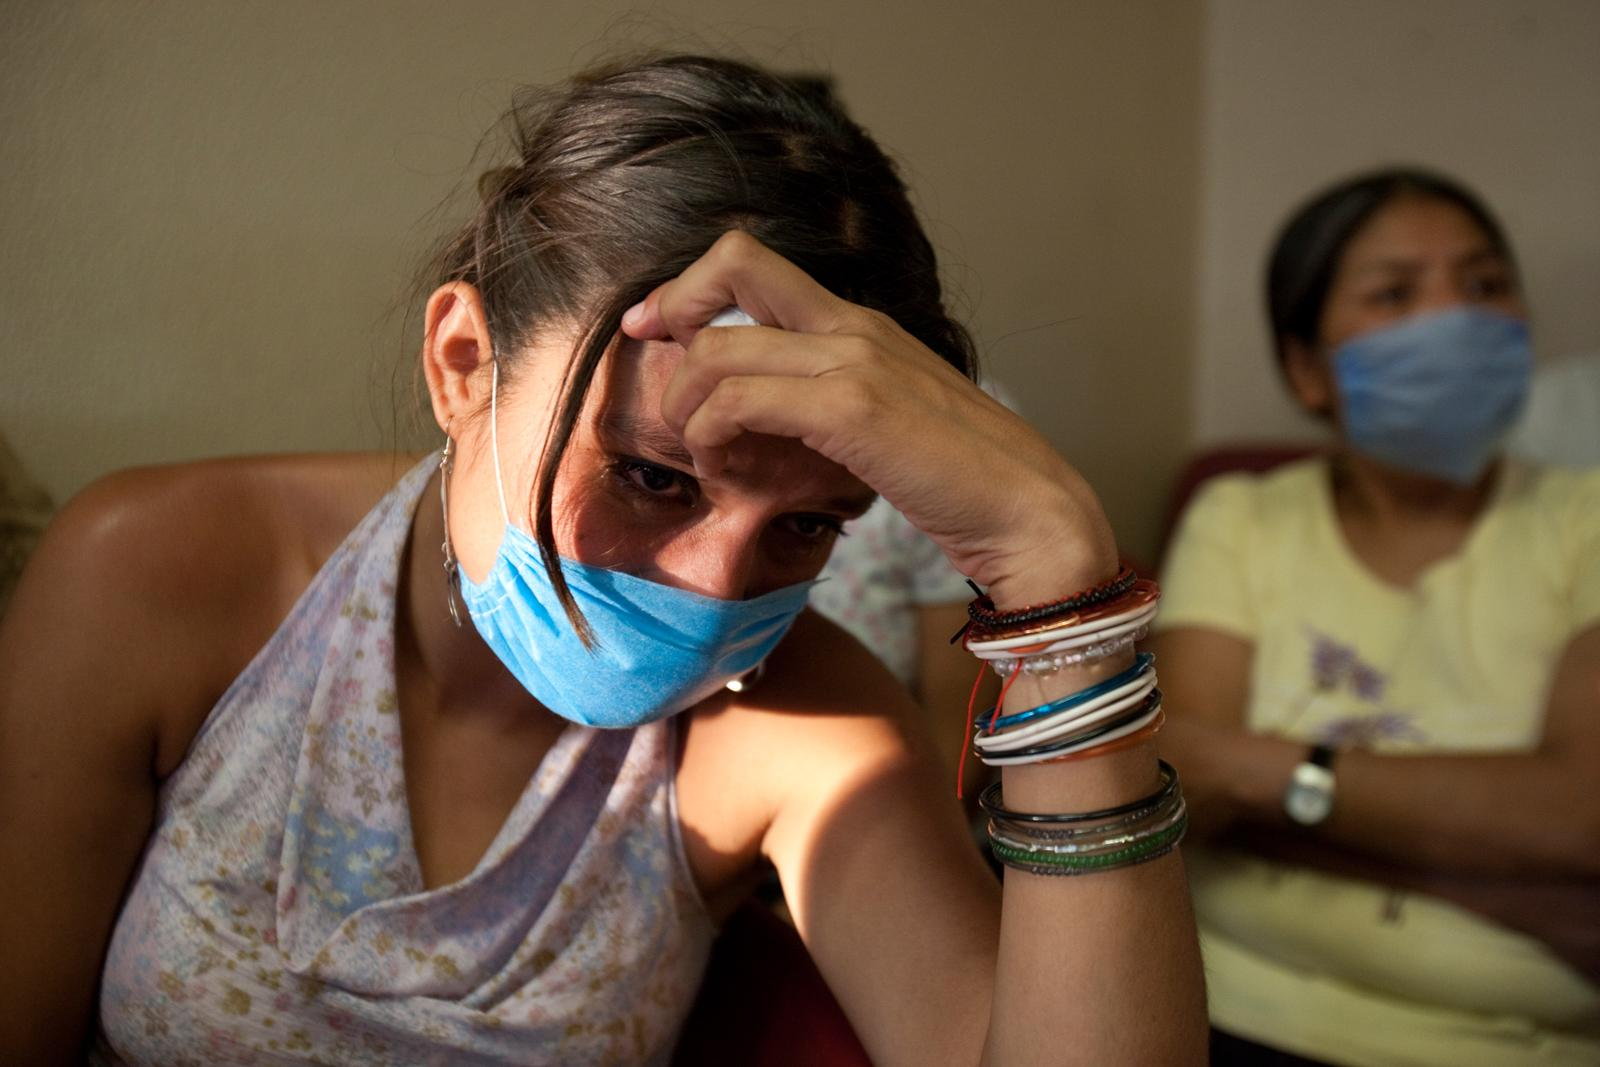 MEXICO A Mexican woman experiencing swine flu-like symptoms sits in an emergency room of the General Hospital in the Iztapalapa borough of Mexico City on April 28, 2009. She waited four hours before she could beexamined by a doctor.